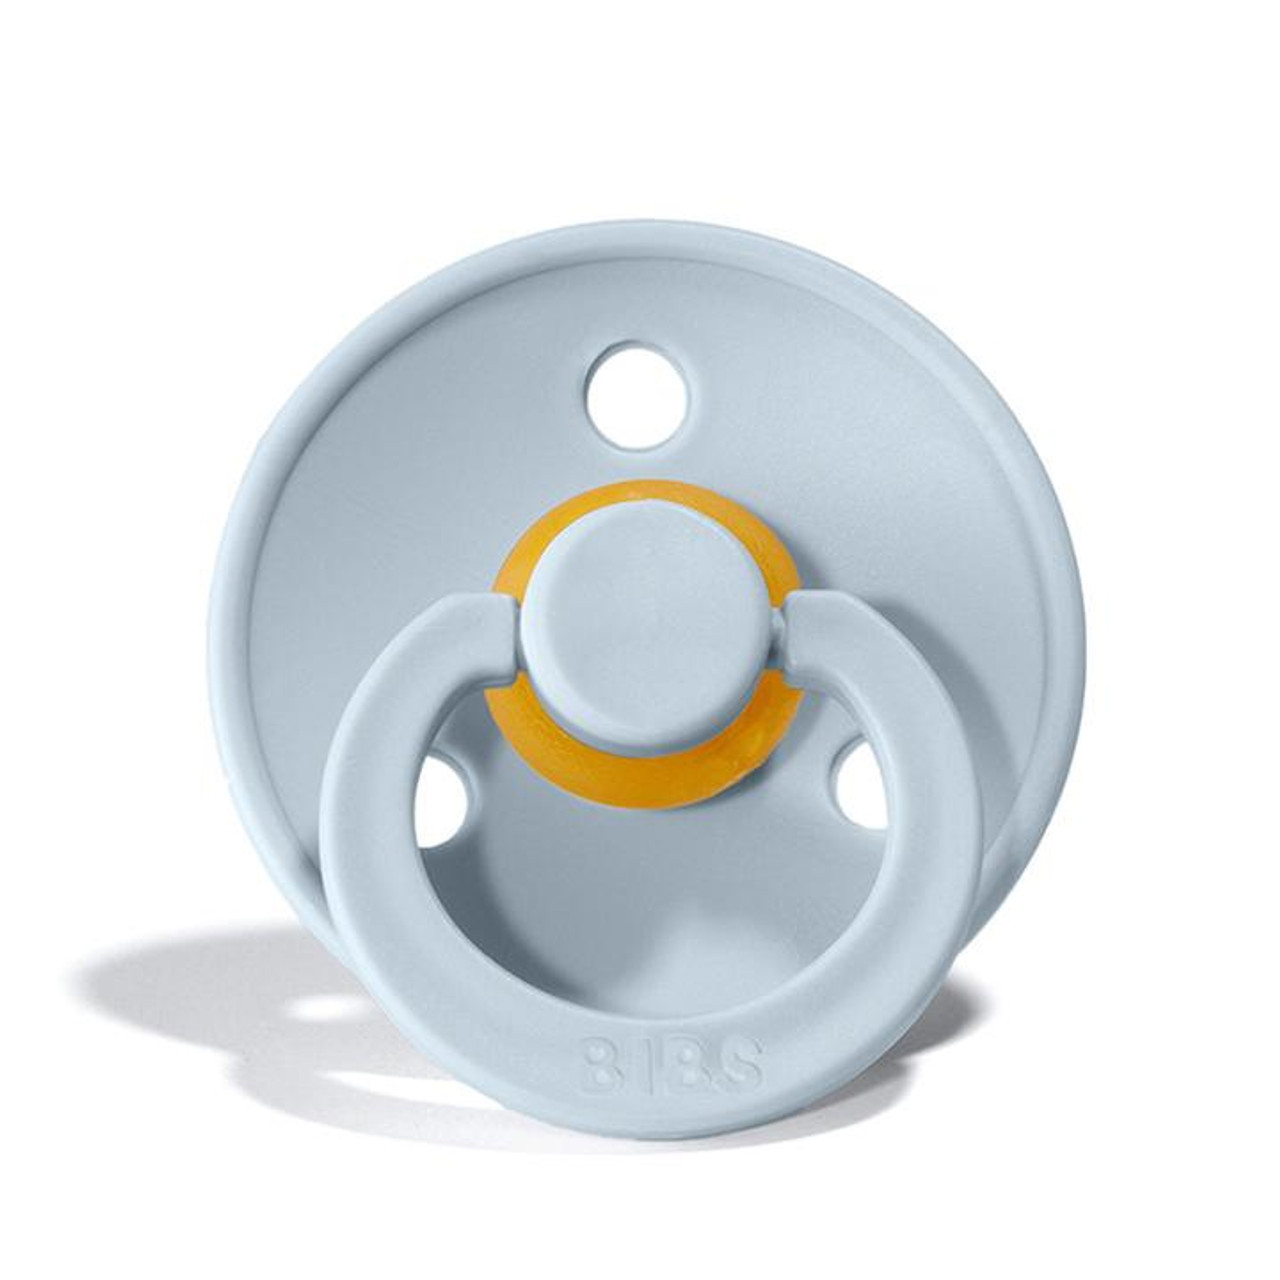 BIBS Colour Collection Pacifier Size Two at Baby Barn Discounts The Colour collection by BIBS is the perfect shape for babies mouth and features a comfortable shield and a beautiful array of colours. This lightweight pacifier is a wonderful baby accessory.